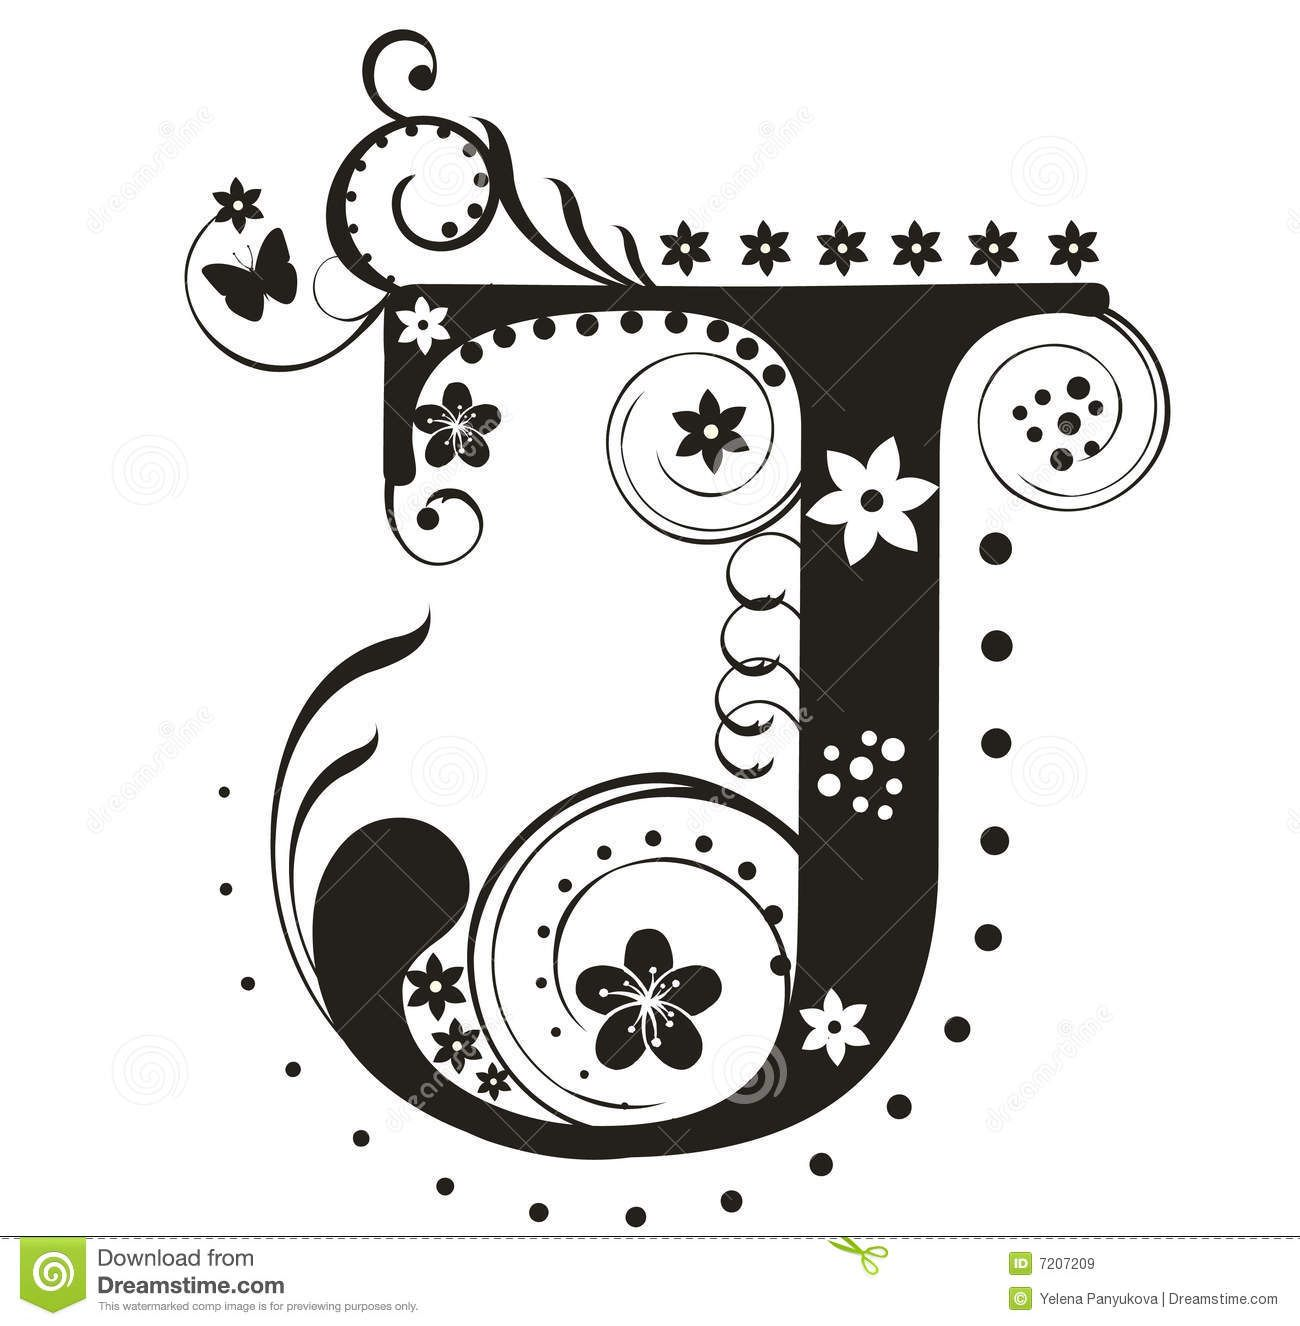 Letter J Royalty Free Stock Images - Image: 7207209